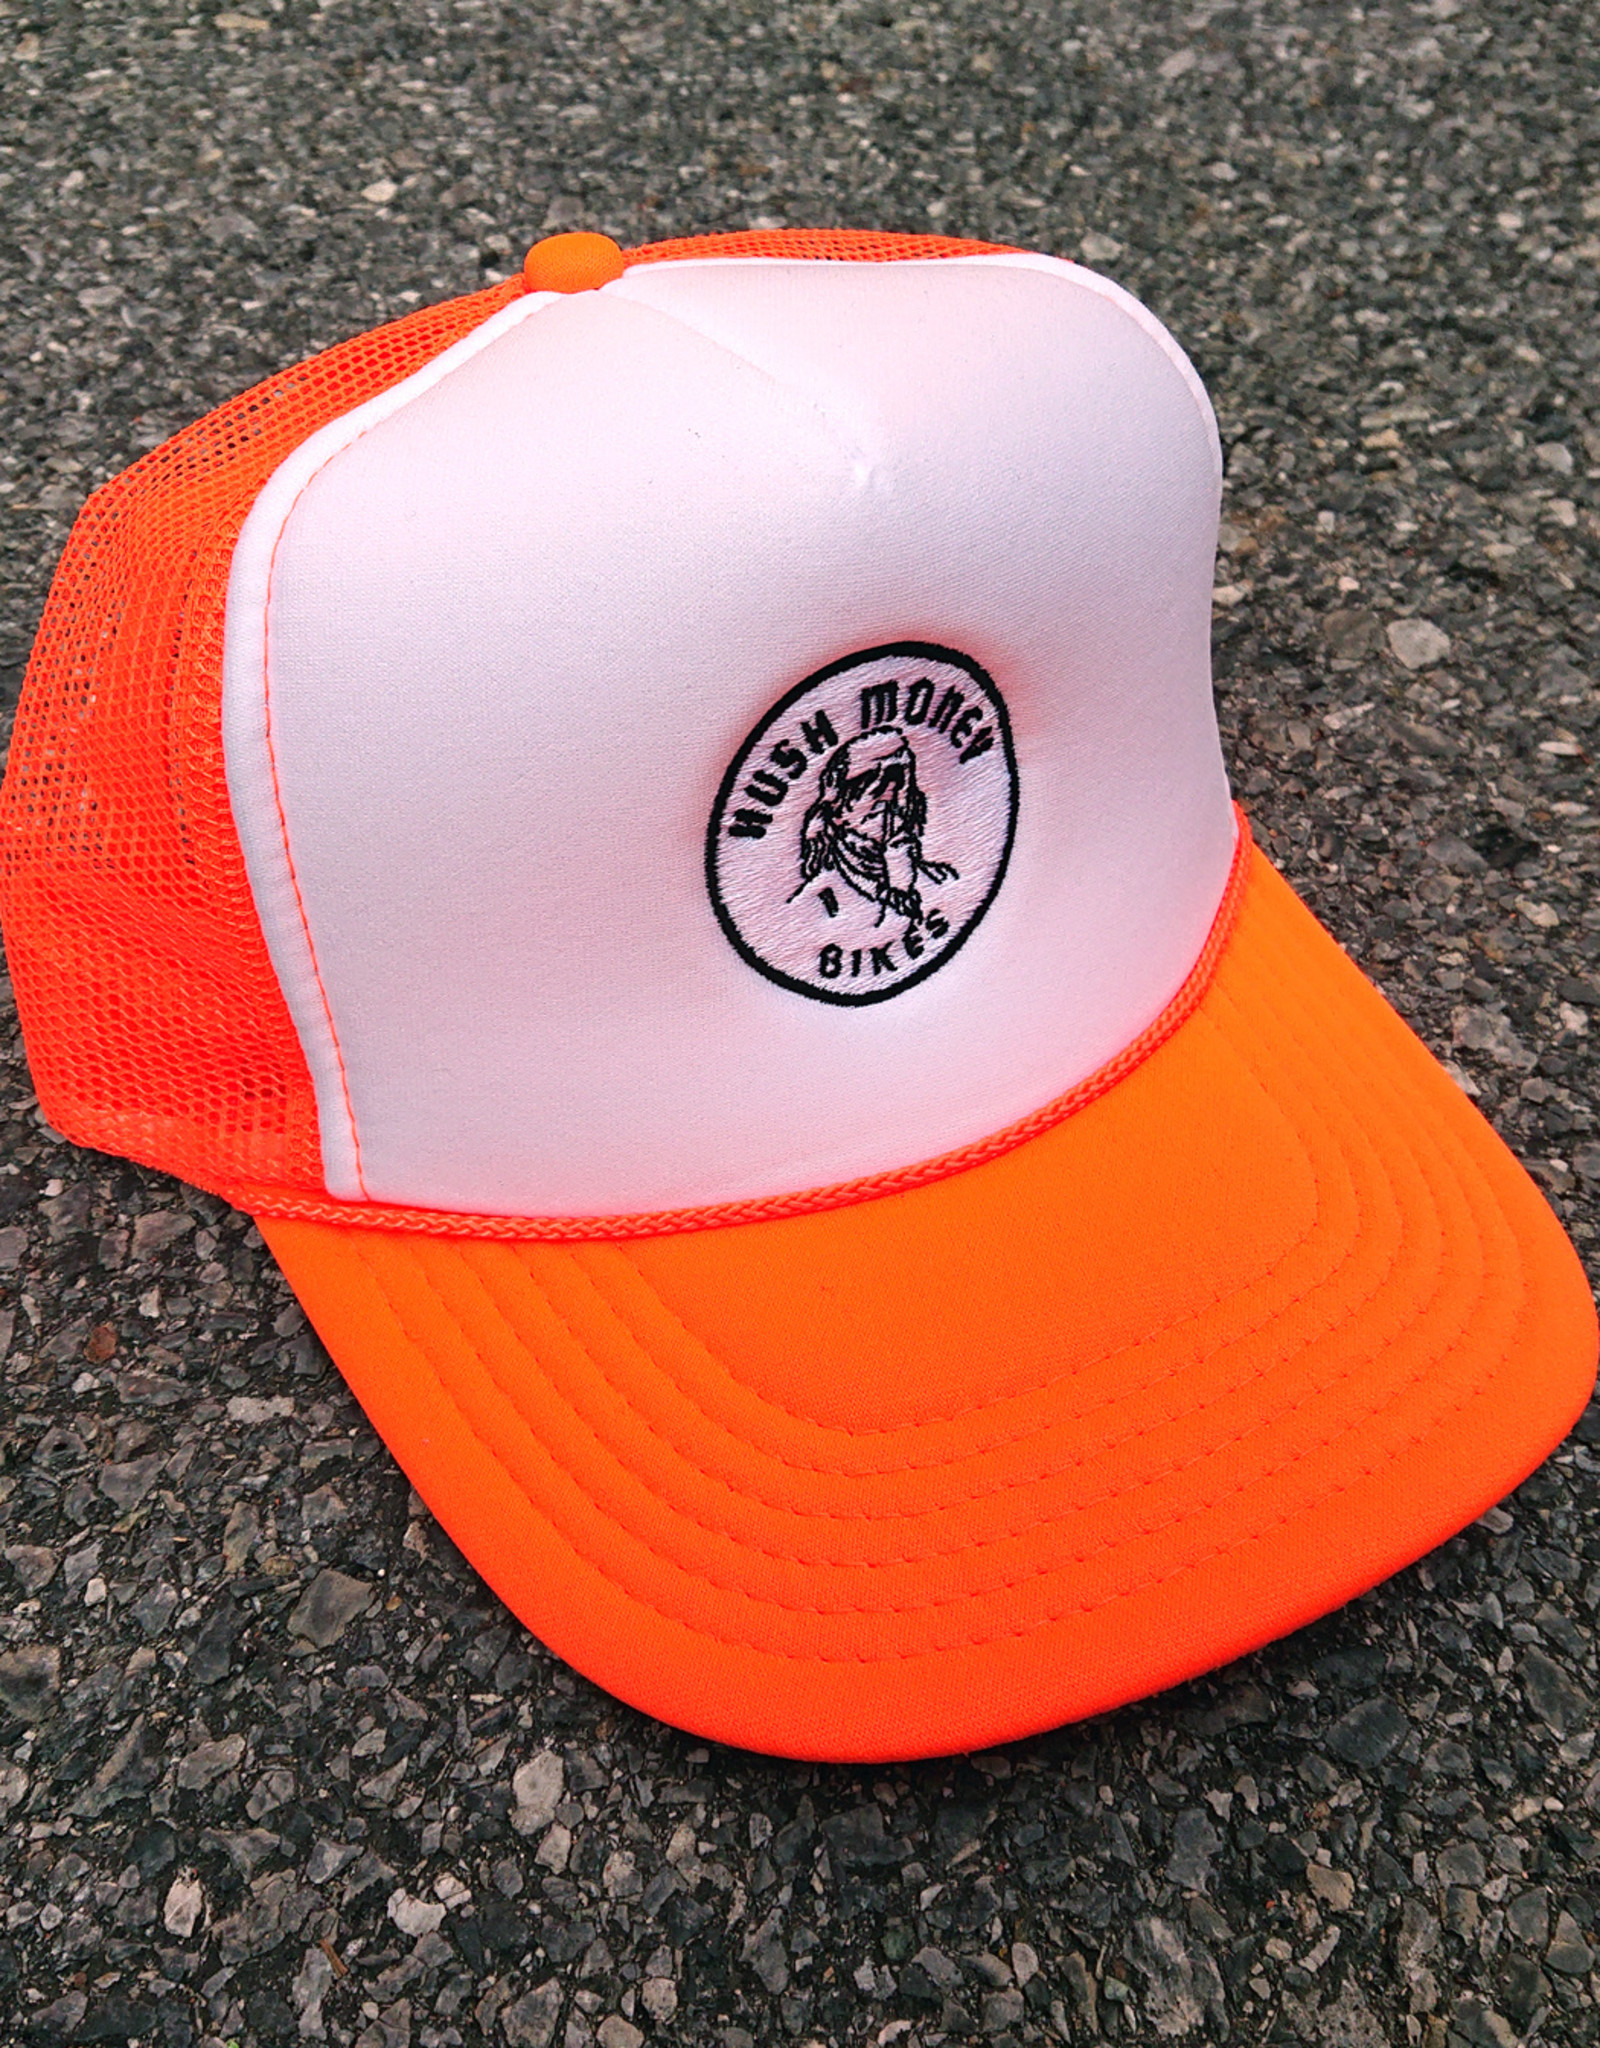 Hush Money Bikes Ben Cranklin Embroidered Foam Trucker Hat Blaze Orange